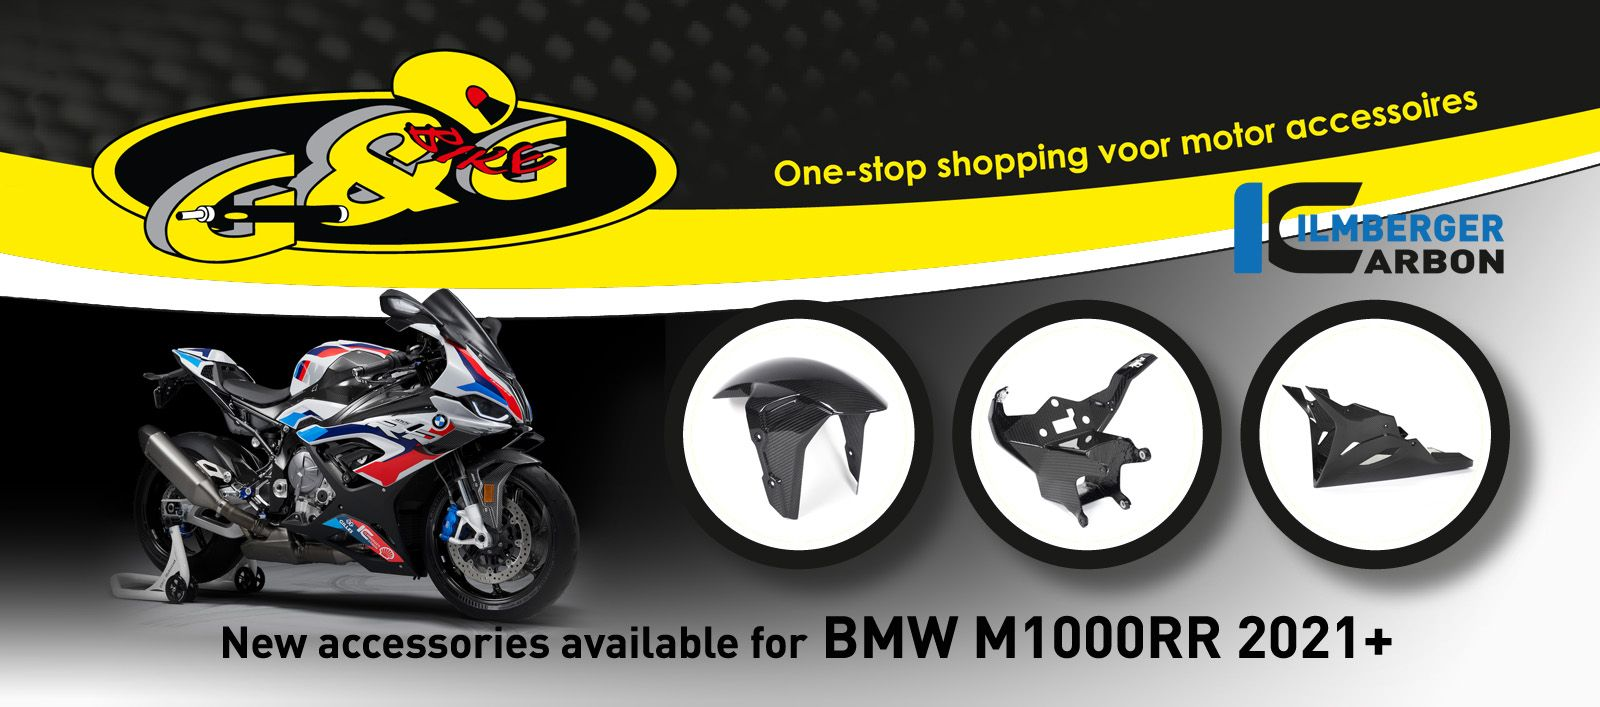 Ilmberger Carbon accessories BMW M1000RR 2021+